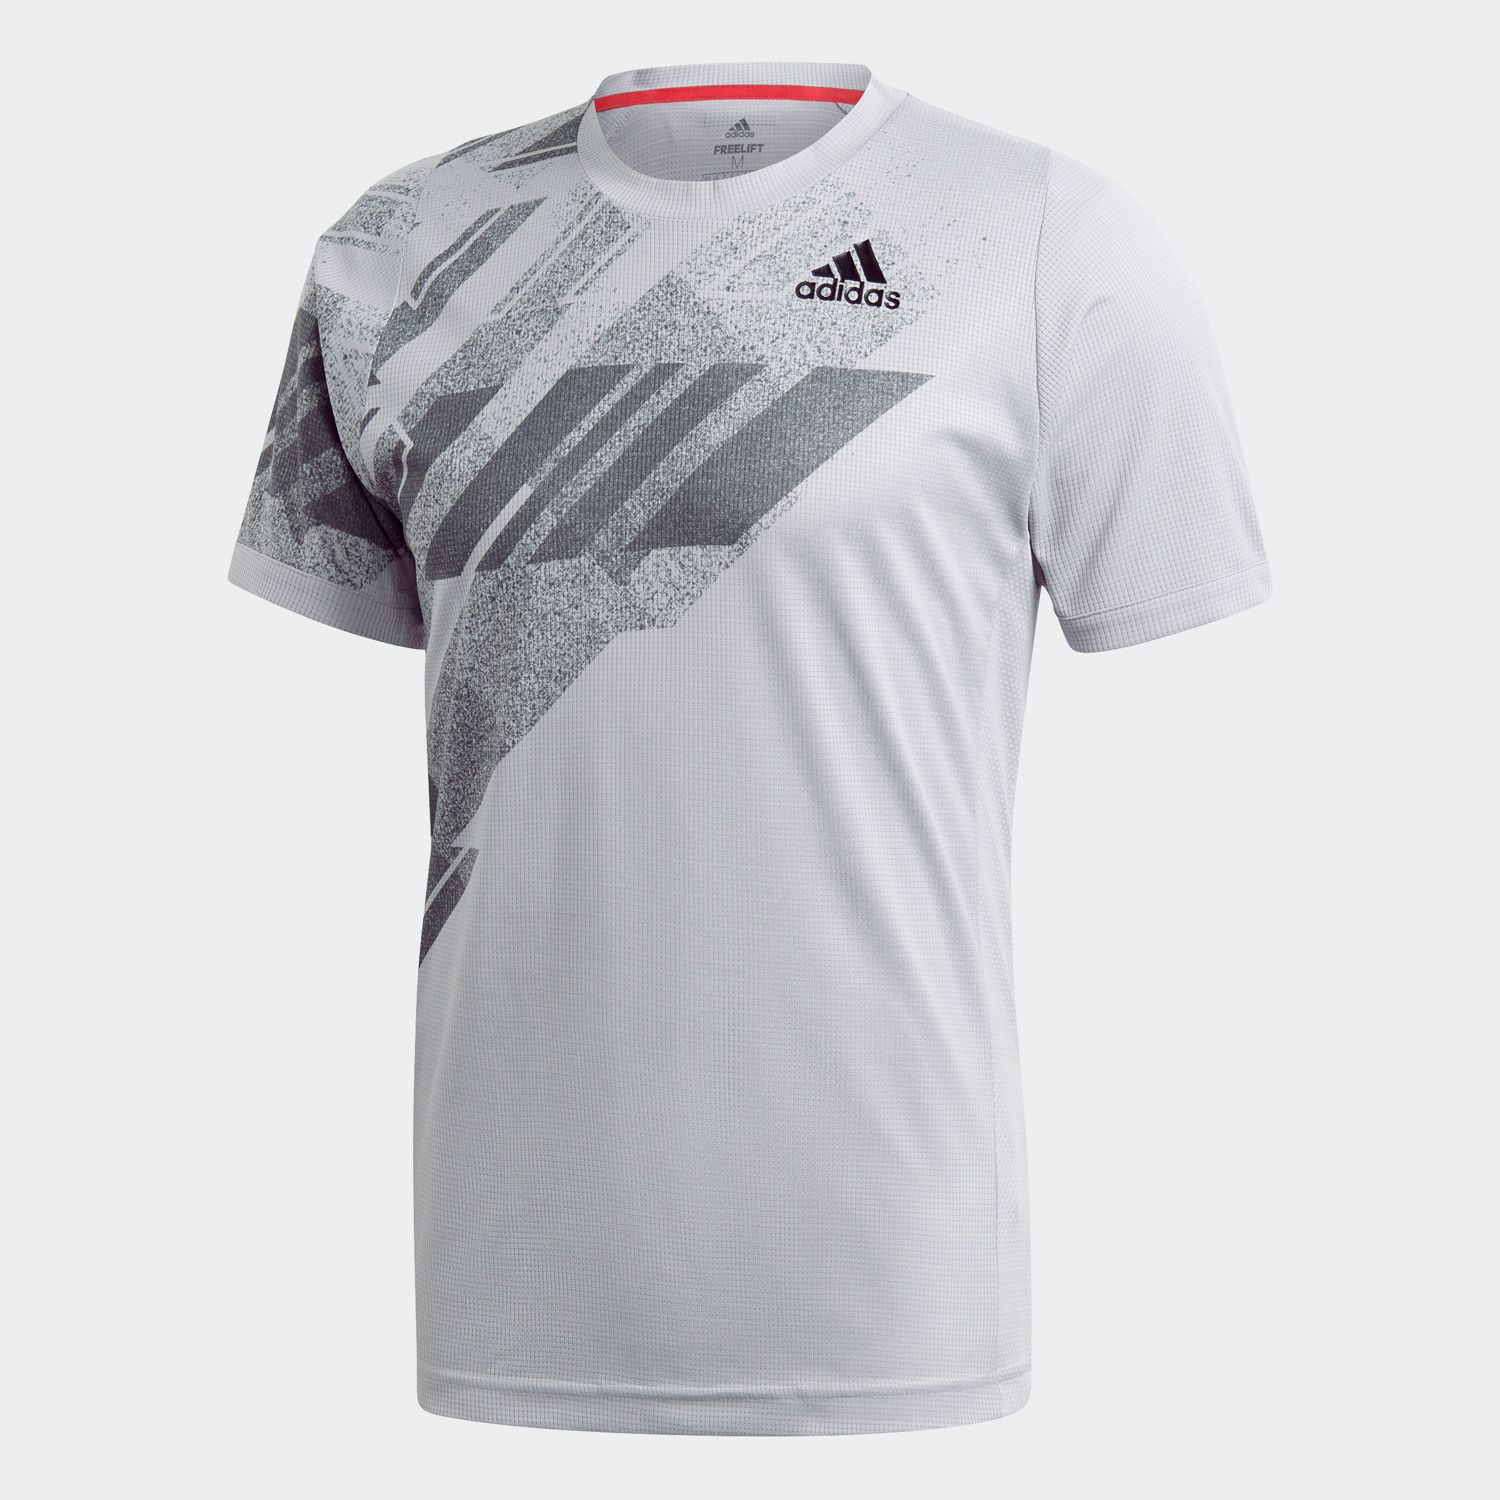 メンズウェア, Tシャツ OK (adidas) T HEAT. RDY FREELIFT PRINTED TENNIS T-SHIRT HEAT. RDY (20aw) IPC98-GG3745